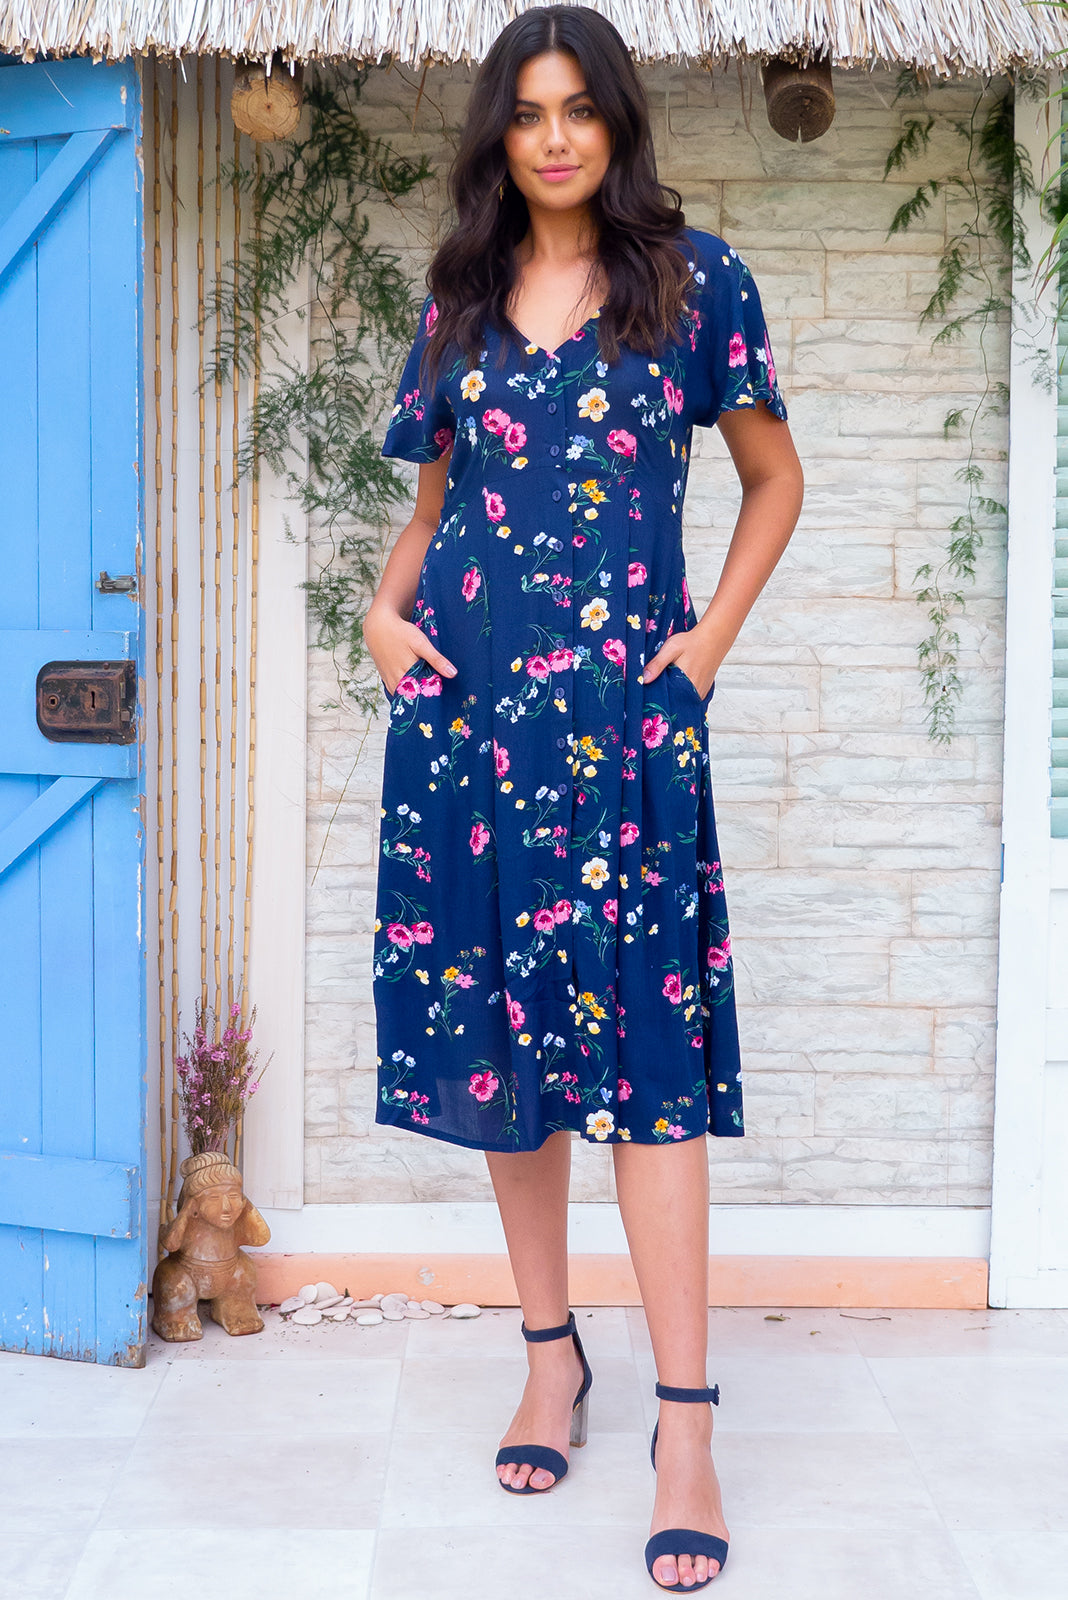 Faithful Chelsea Navy Midi dress features a button front, soft petal sleeve and deep side pockets it is made in a crinkled woven rayon and comes in a bright navy based floral print